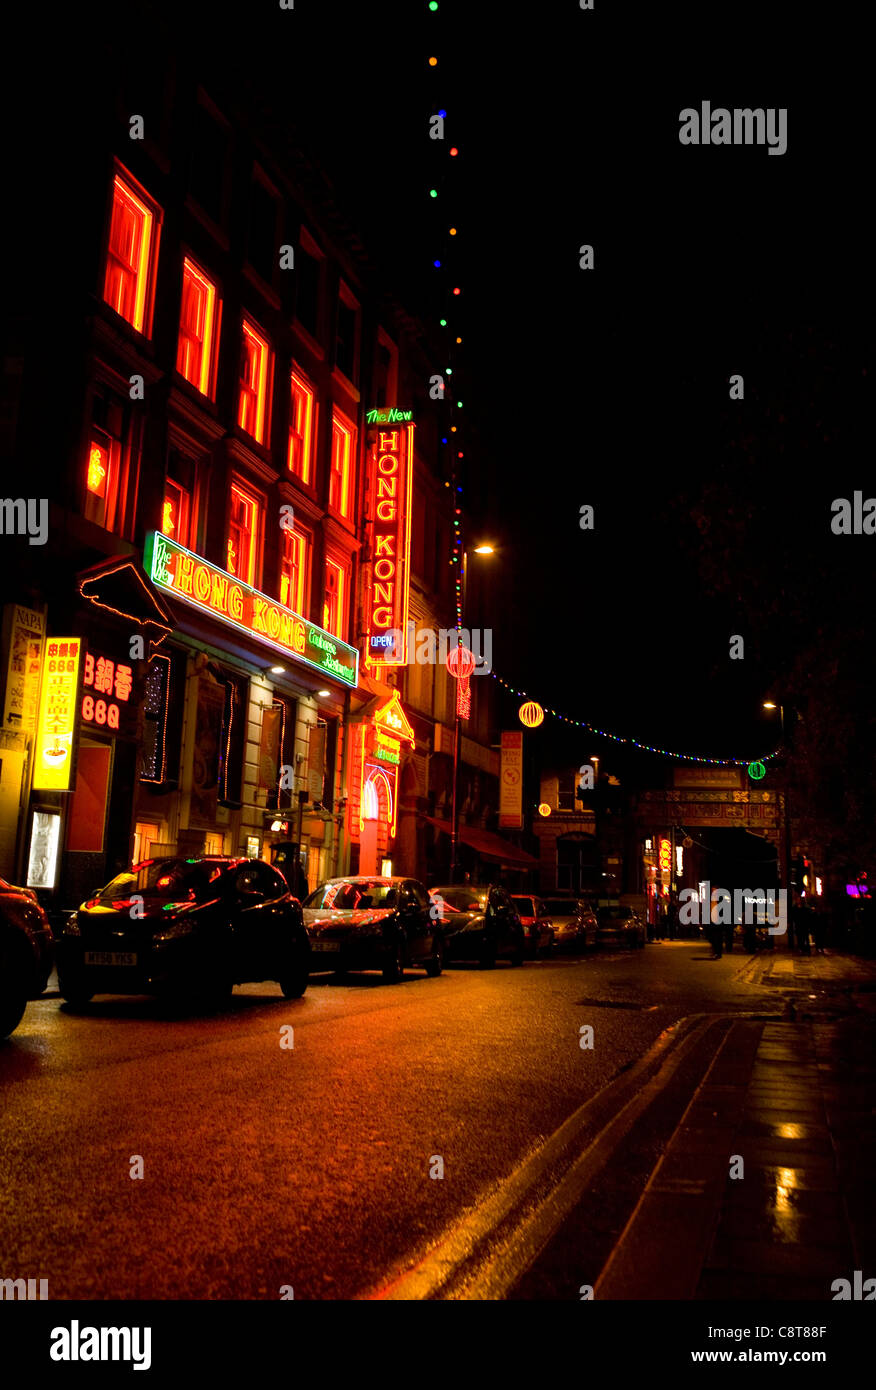 China town in manchester 2011 Stock Photo